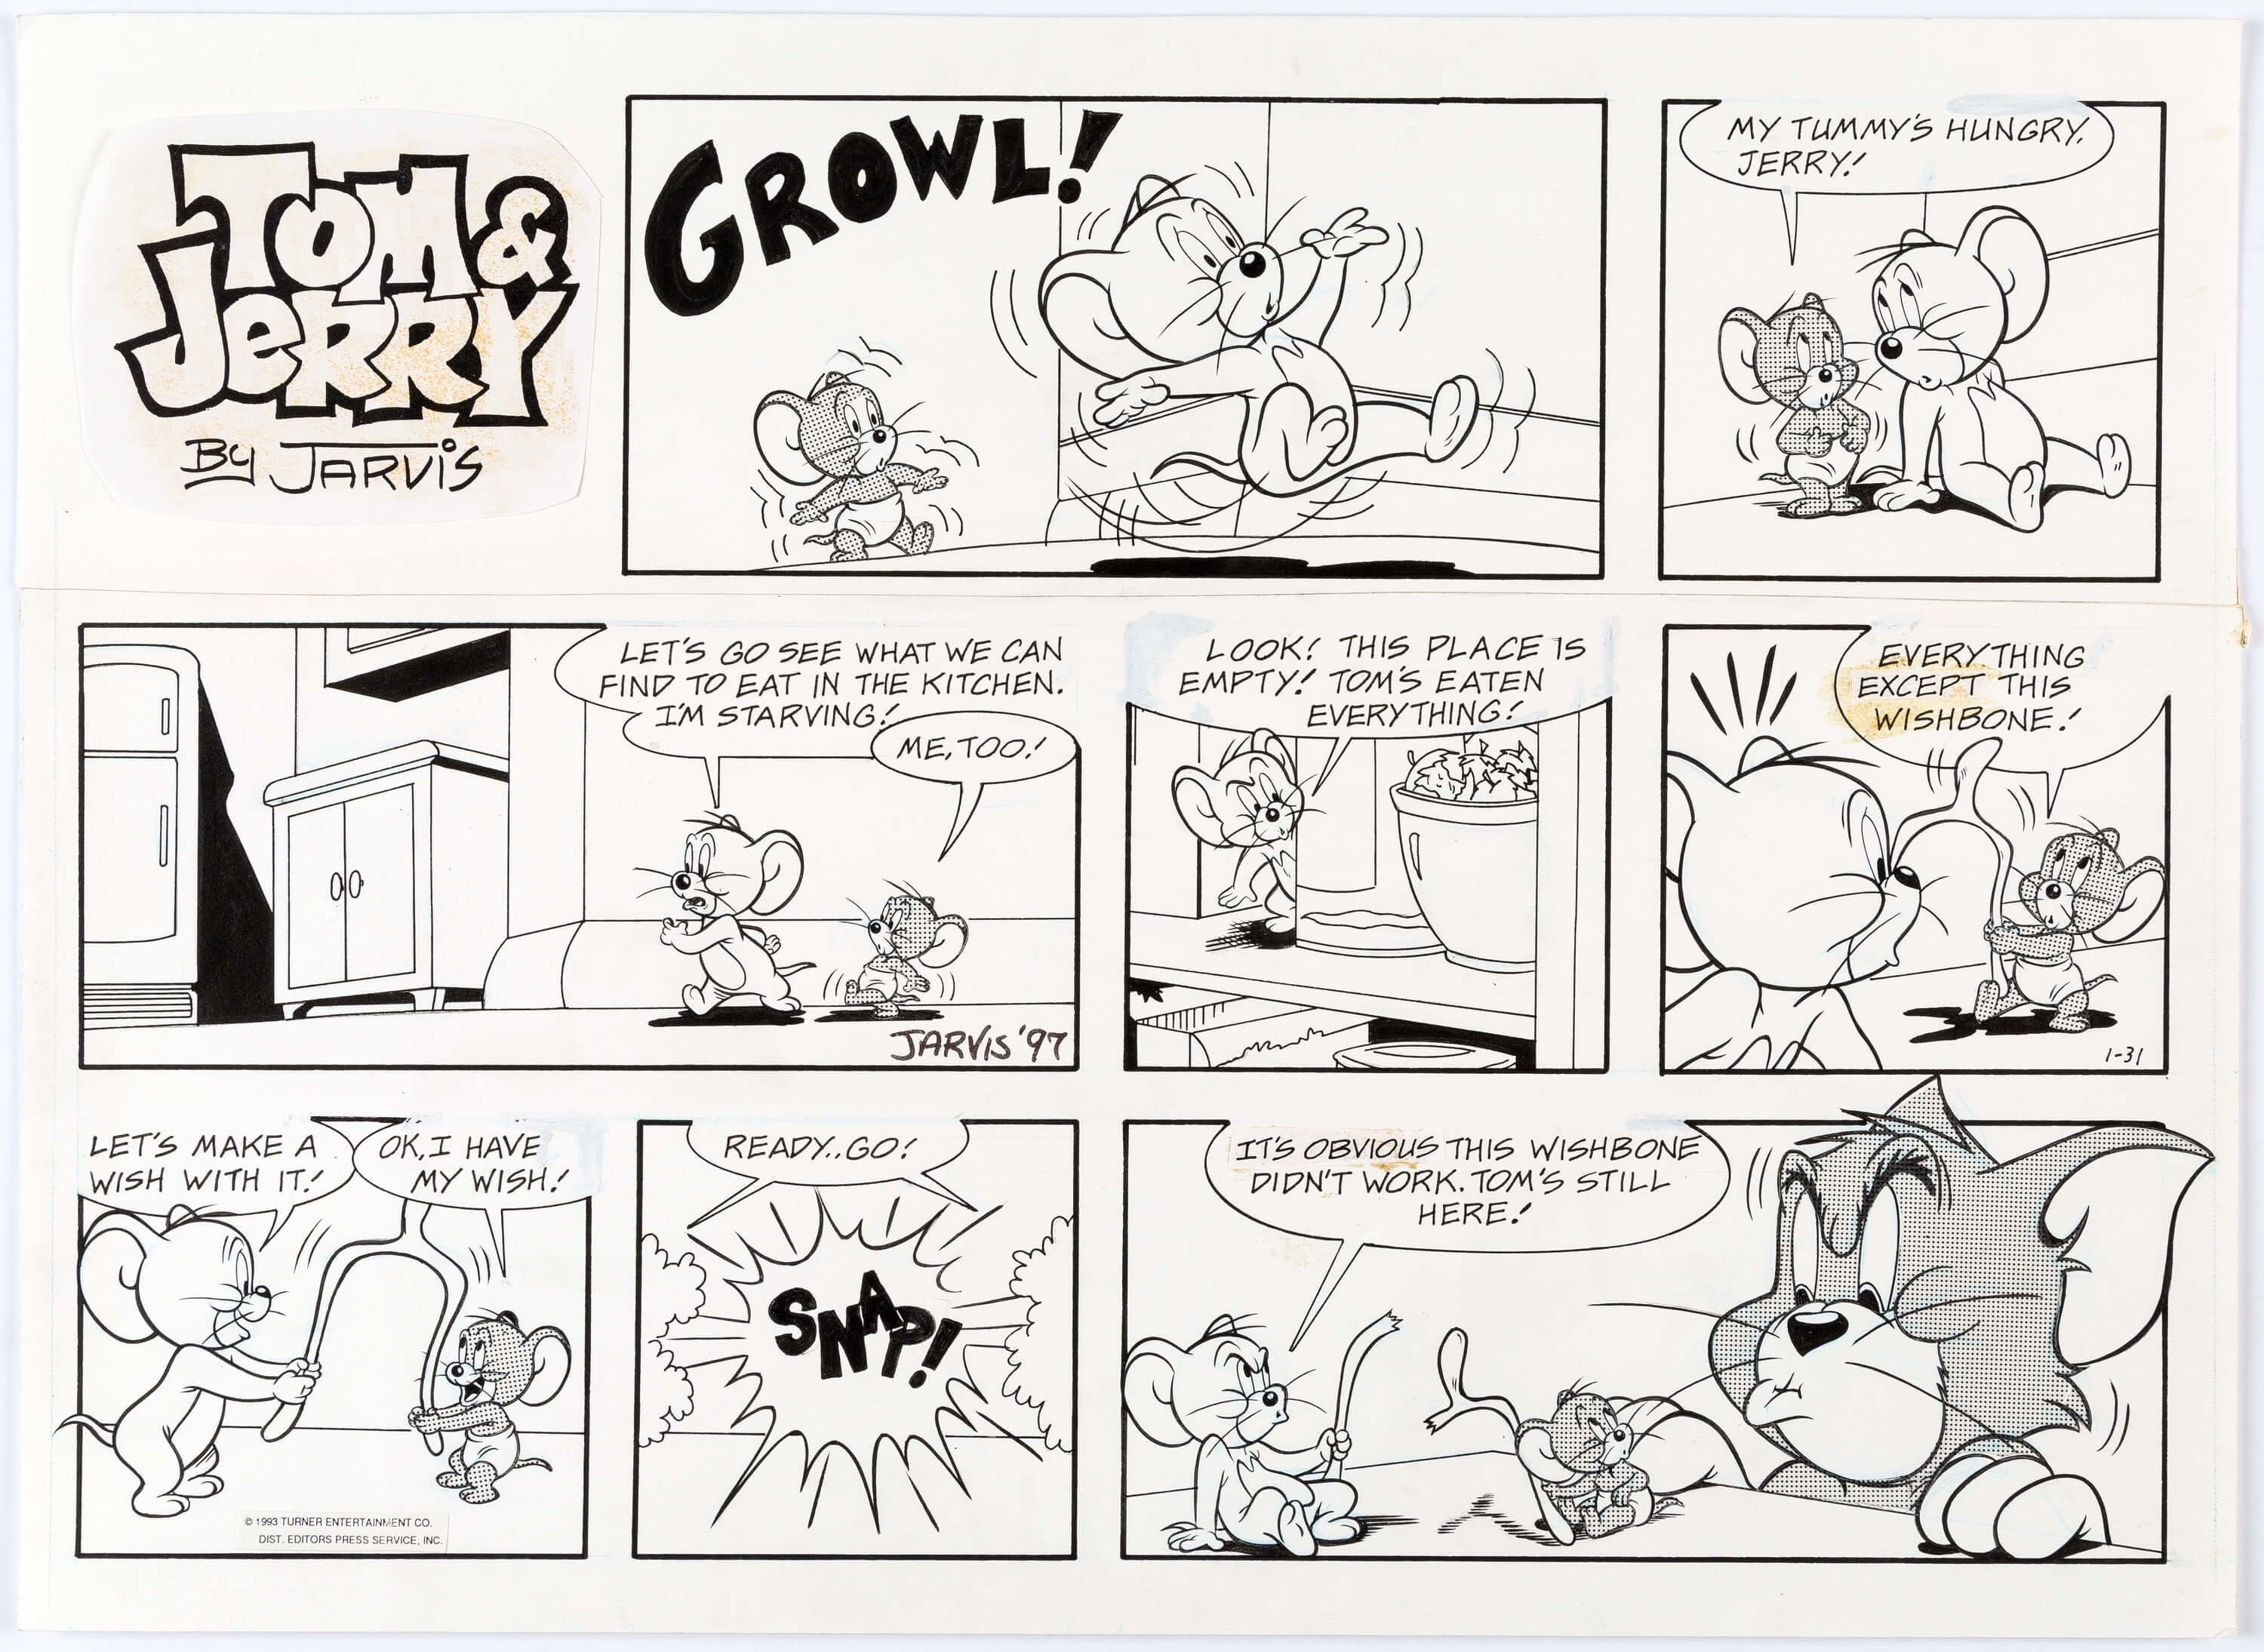 Kelly Jarvis Tom And Jerry Sunday Comic Strip Original Art Dated Lot 13051 Heritage Auctions Comic Strips My Little Pony Drawing Tom And Jerry